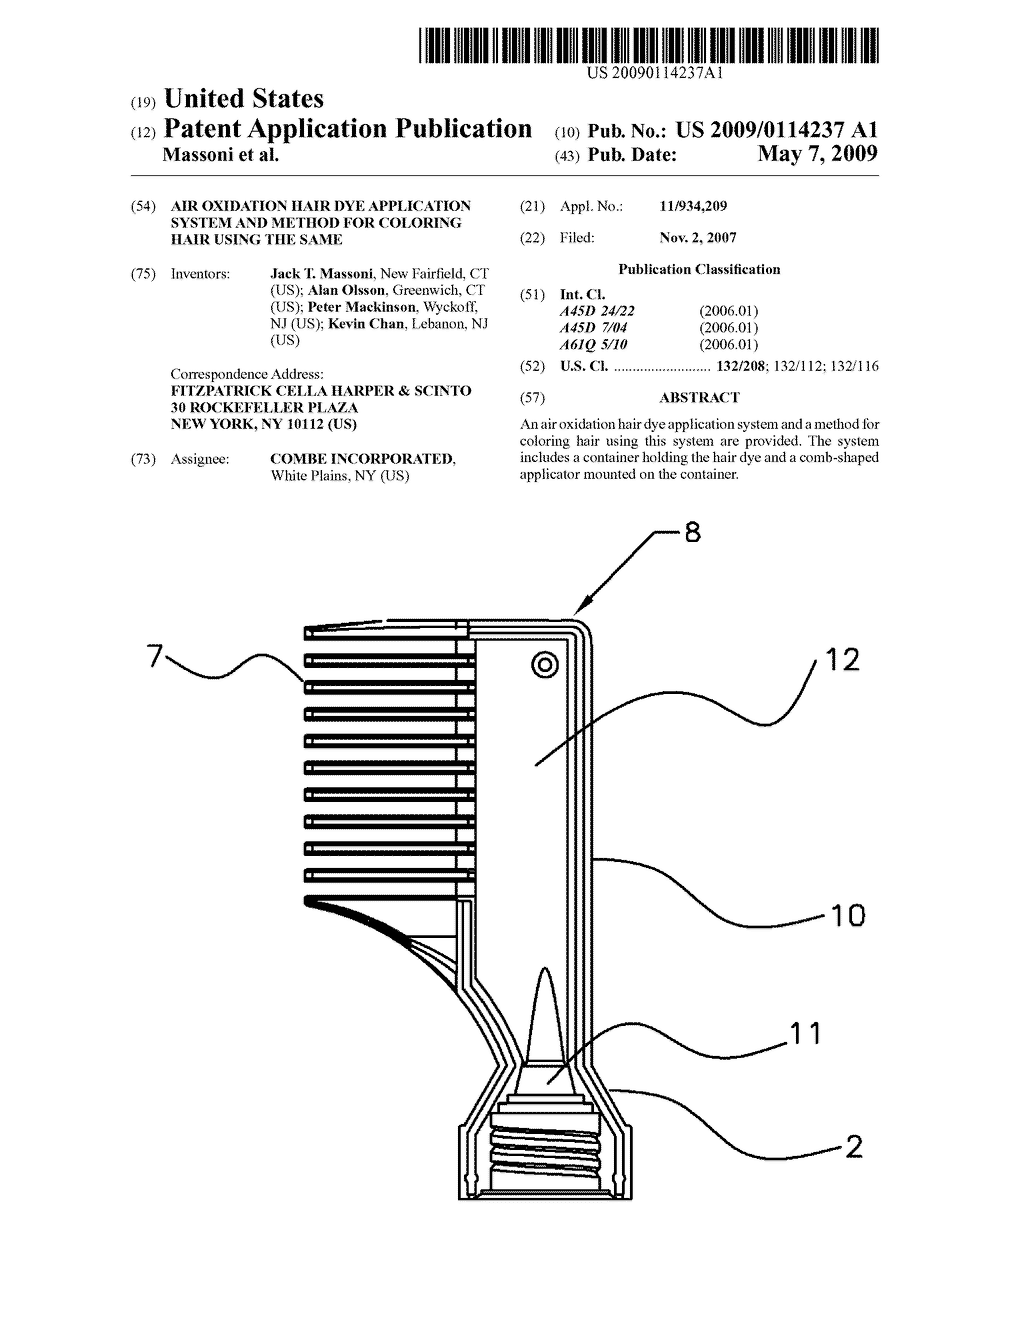 AIR OXIDATION HAIR DYE APPLICATION SYSTEM AND METHOD FOR COLORING HAIR USING THE SAME - diagram, schematic, and image 01